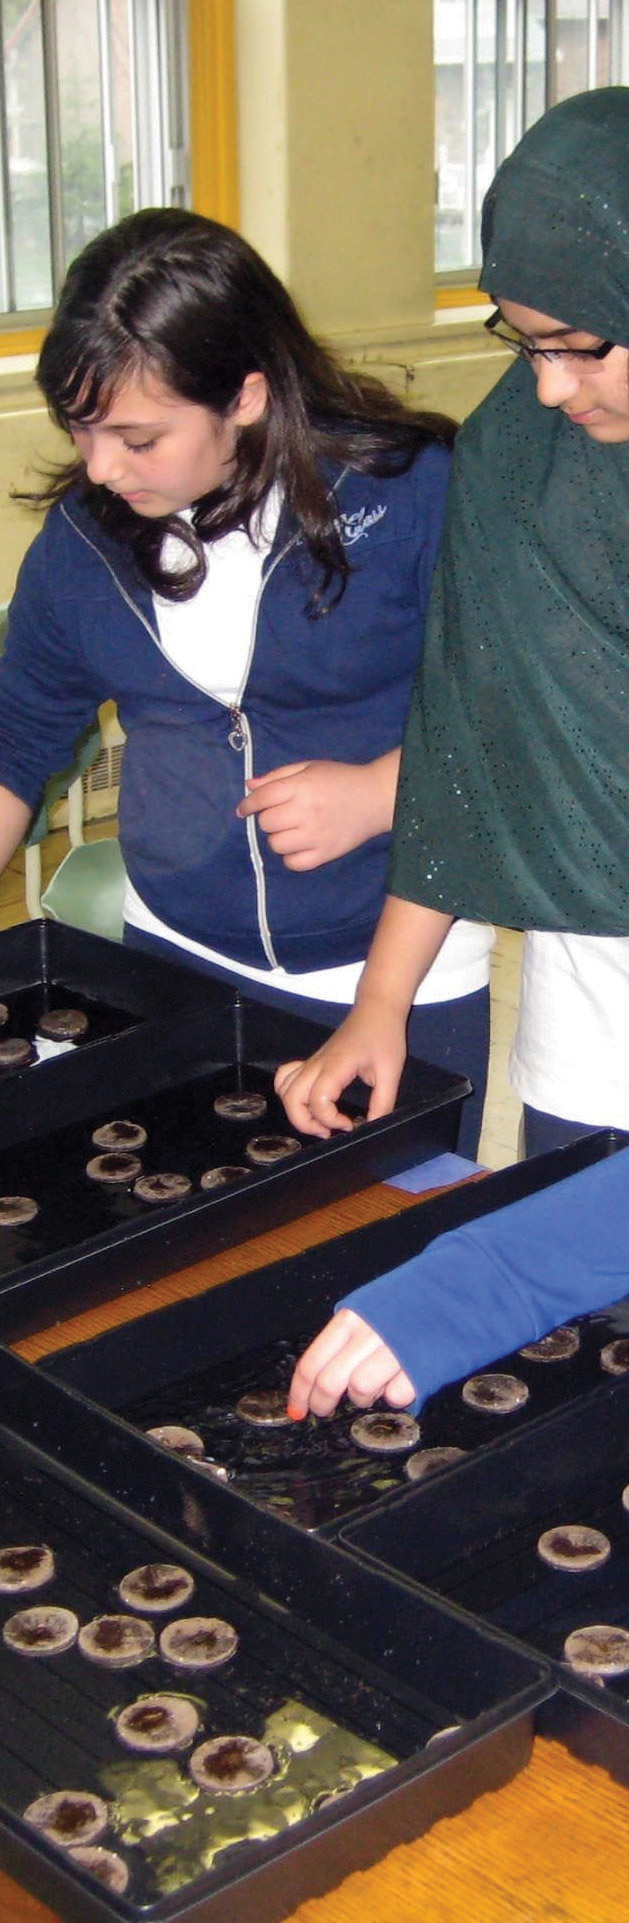 students examining seeds in germination pods